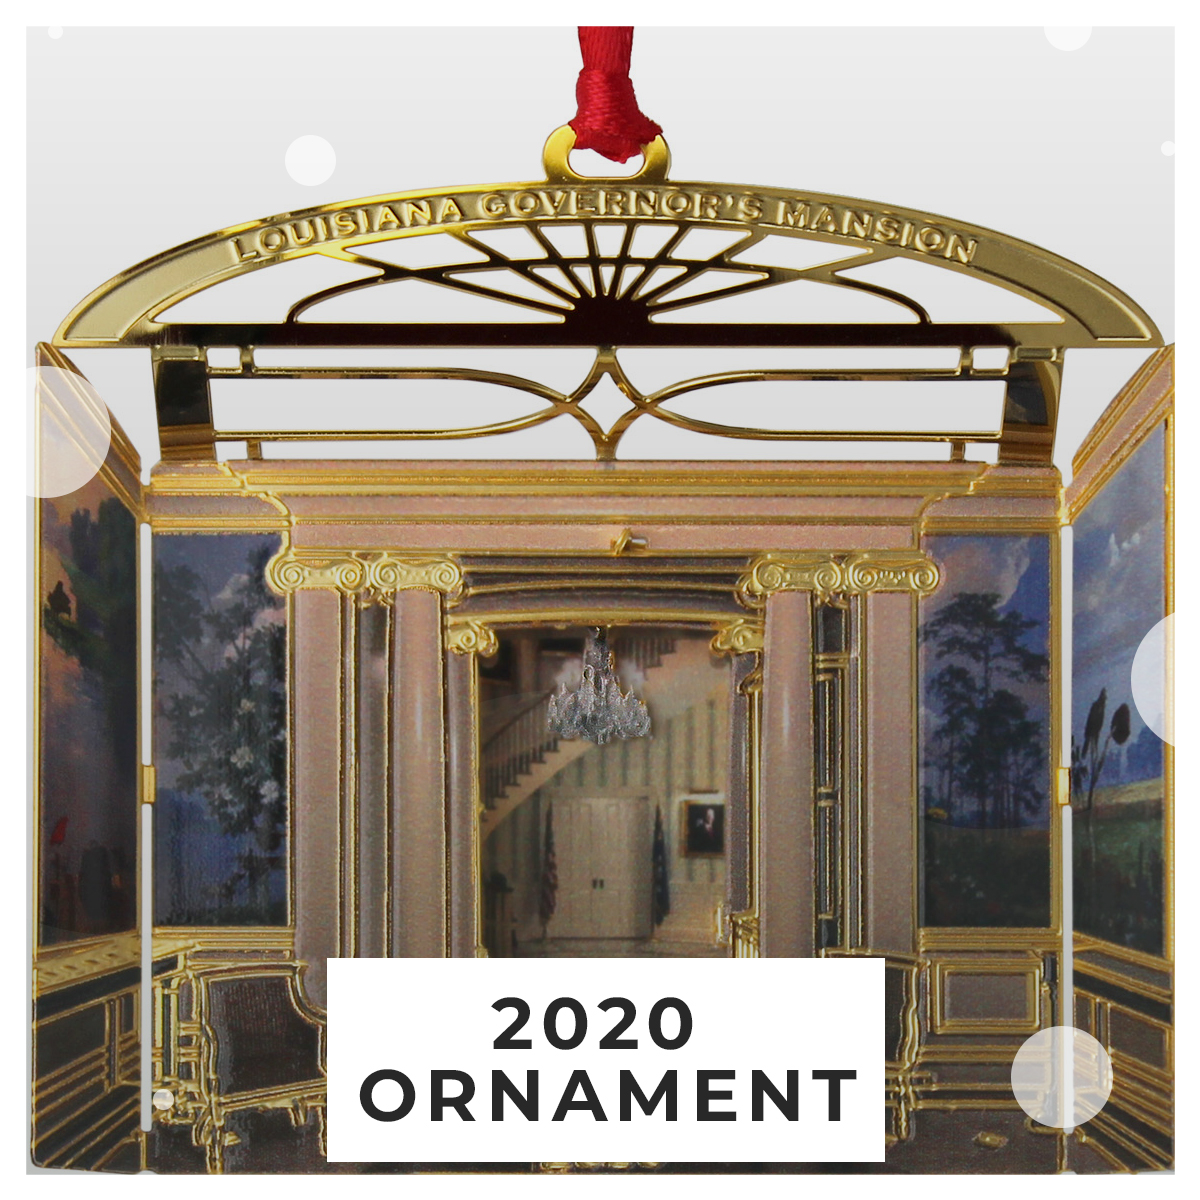 Governor's Mansion Ornament 2020